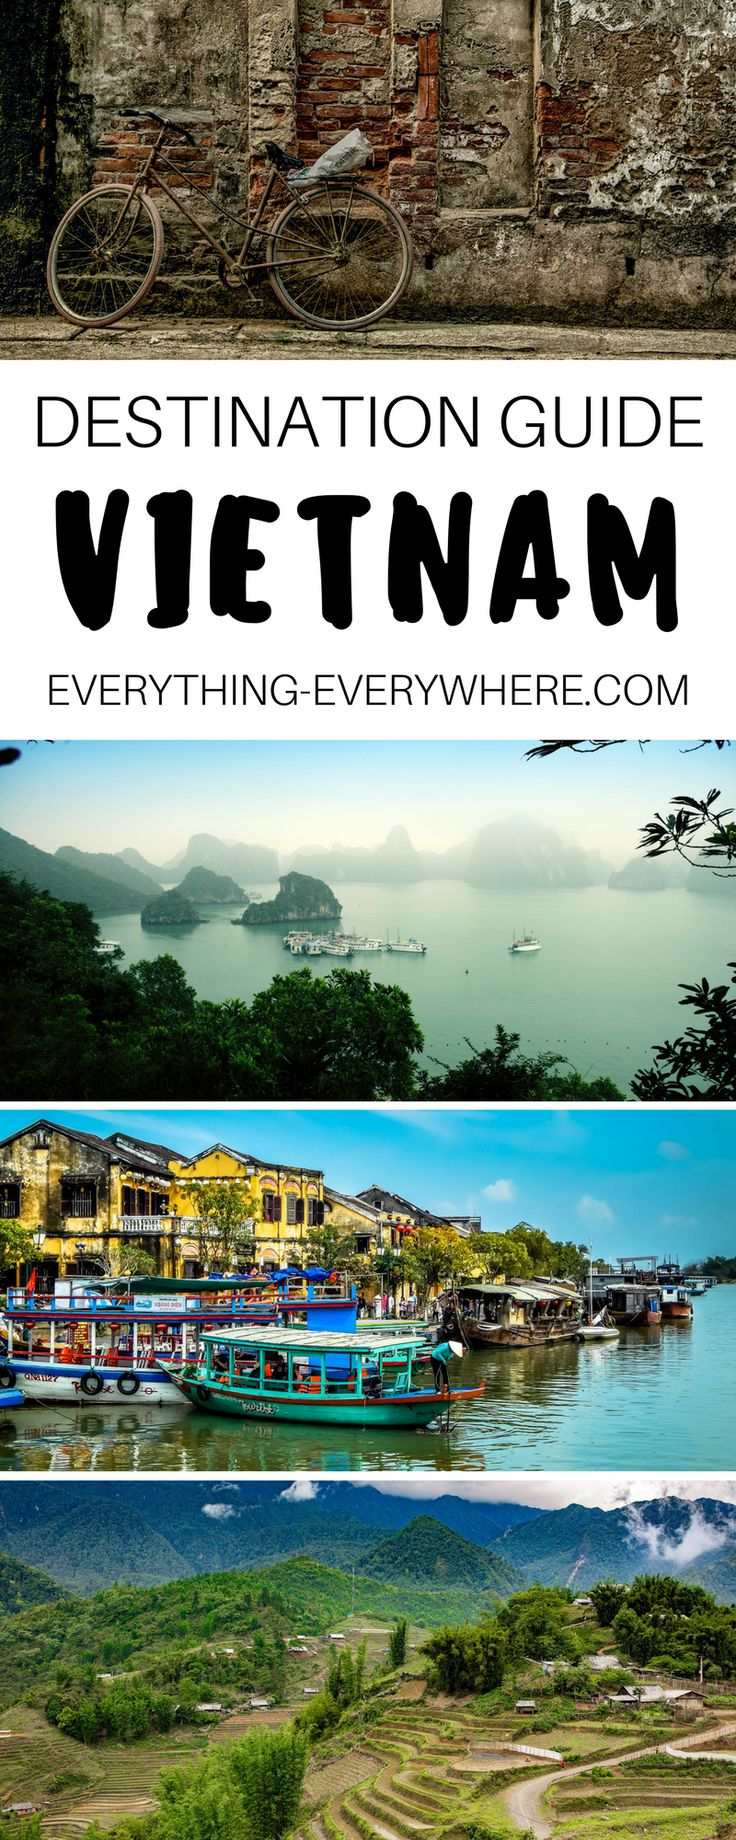 The ultimate travel guide to Vietnam including top destinations and things to do in Halong Bay, Hue, Hoi An, Saigon and more + best Vietnamese food and cuisine and other practical tips for your trip. | Everything Everywhere Travel Blog#Travel #Vietnam